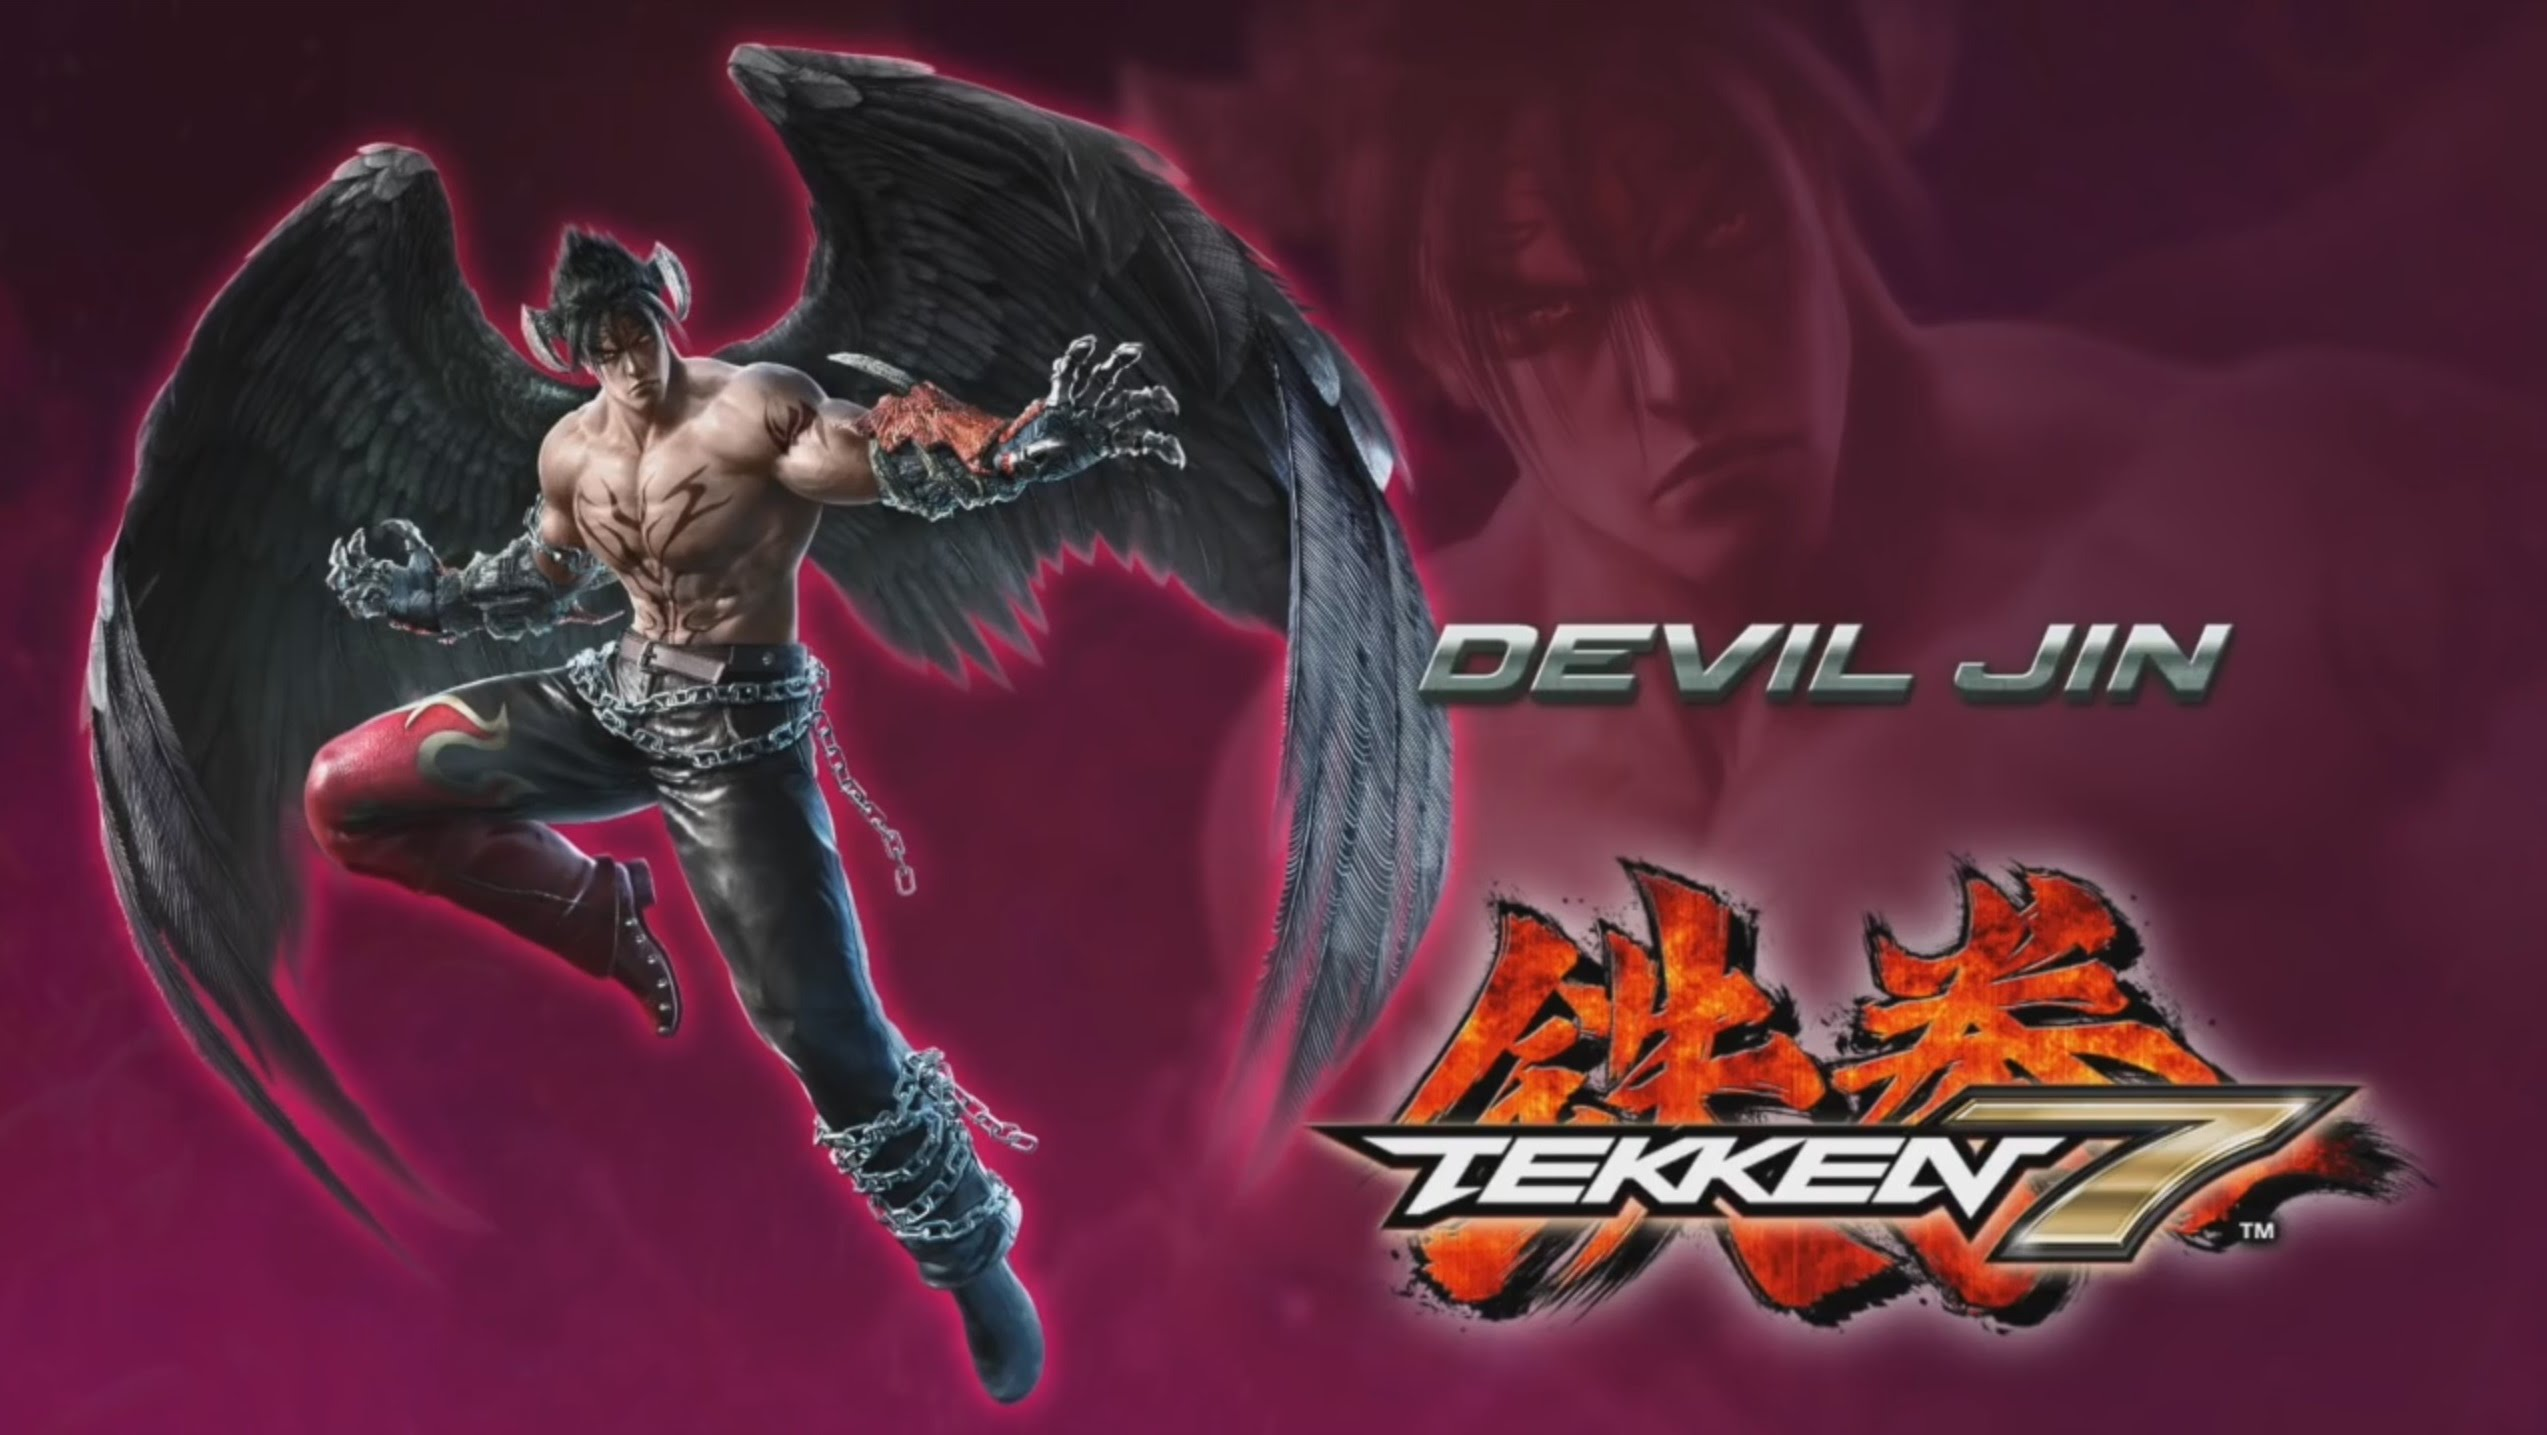 Tekken 7 Hd Wallpapers Free Download